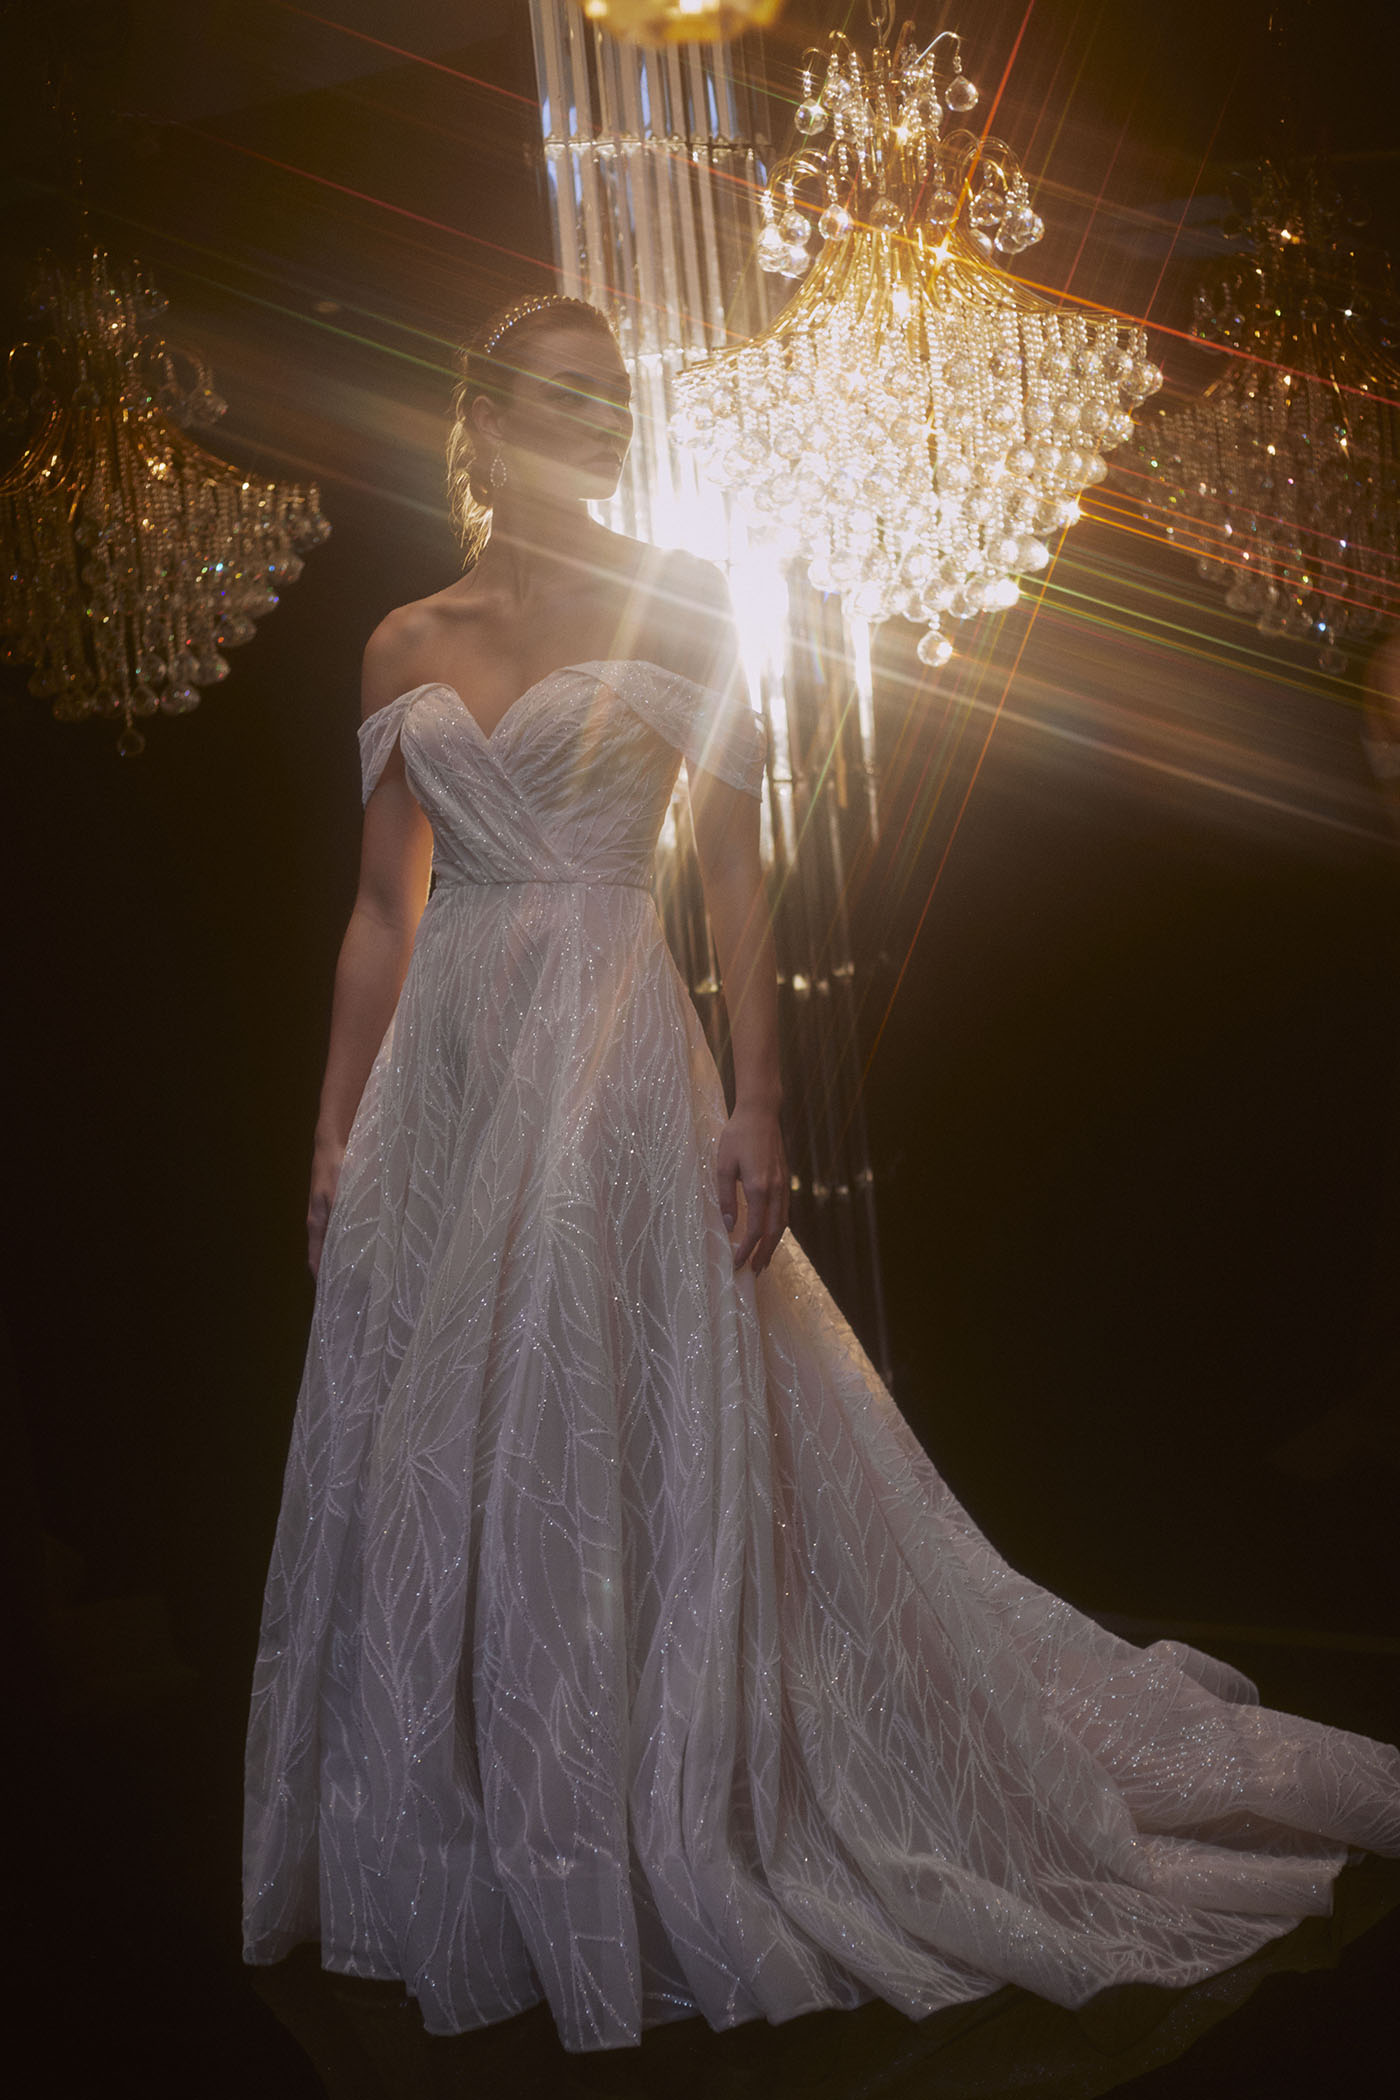 Mazzy Gown by Hayley Paige